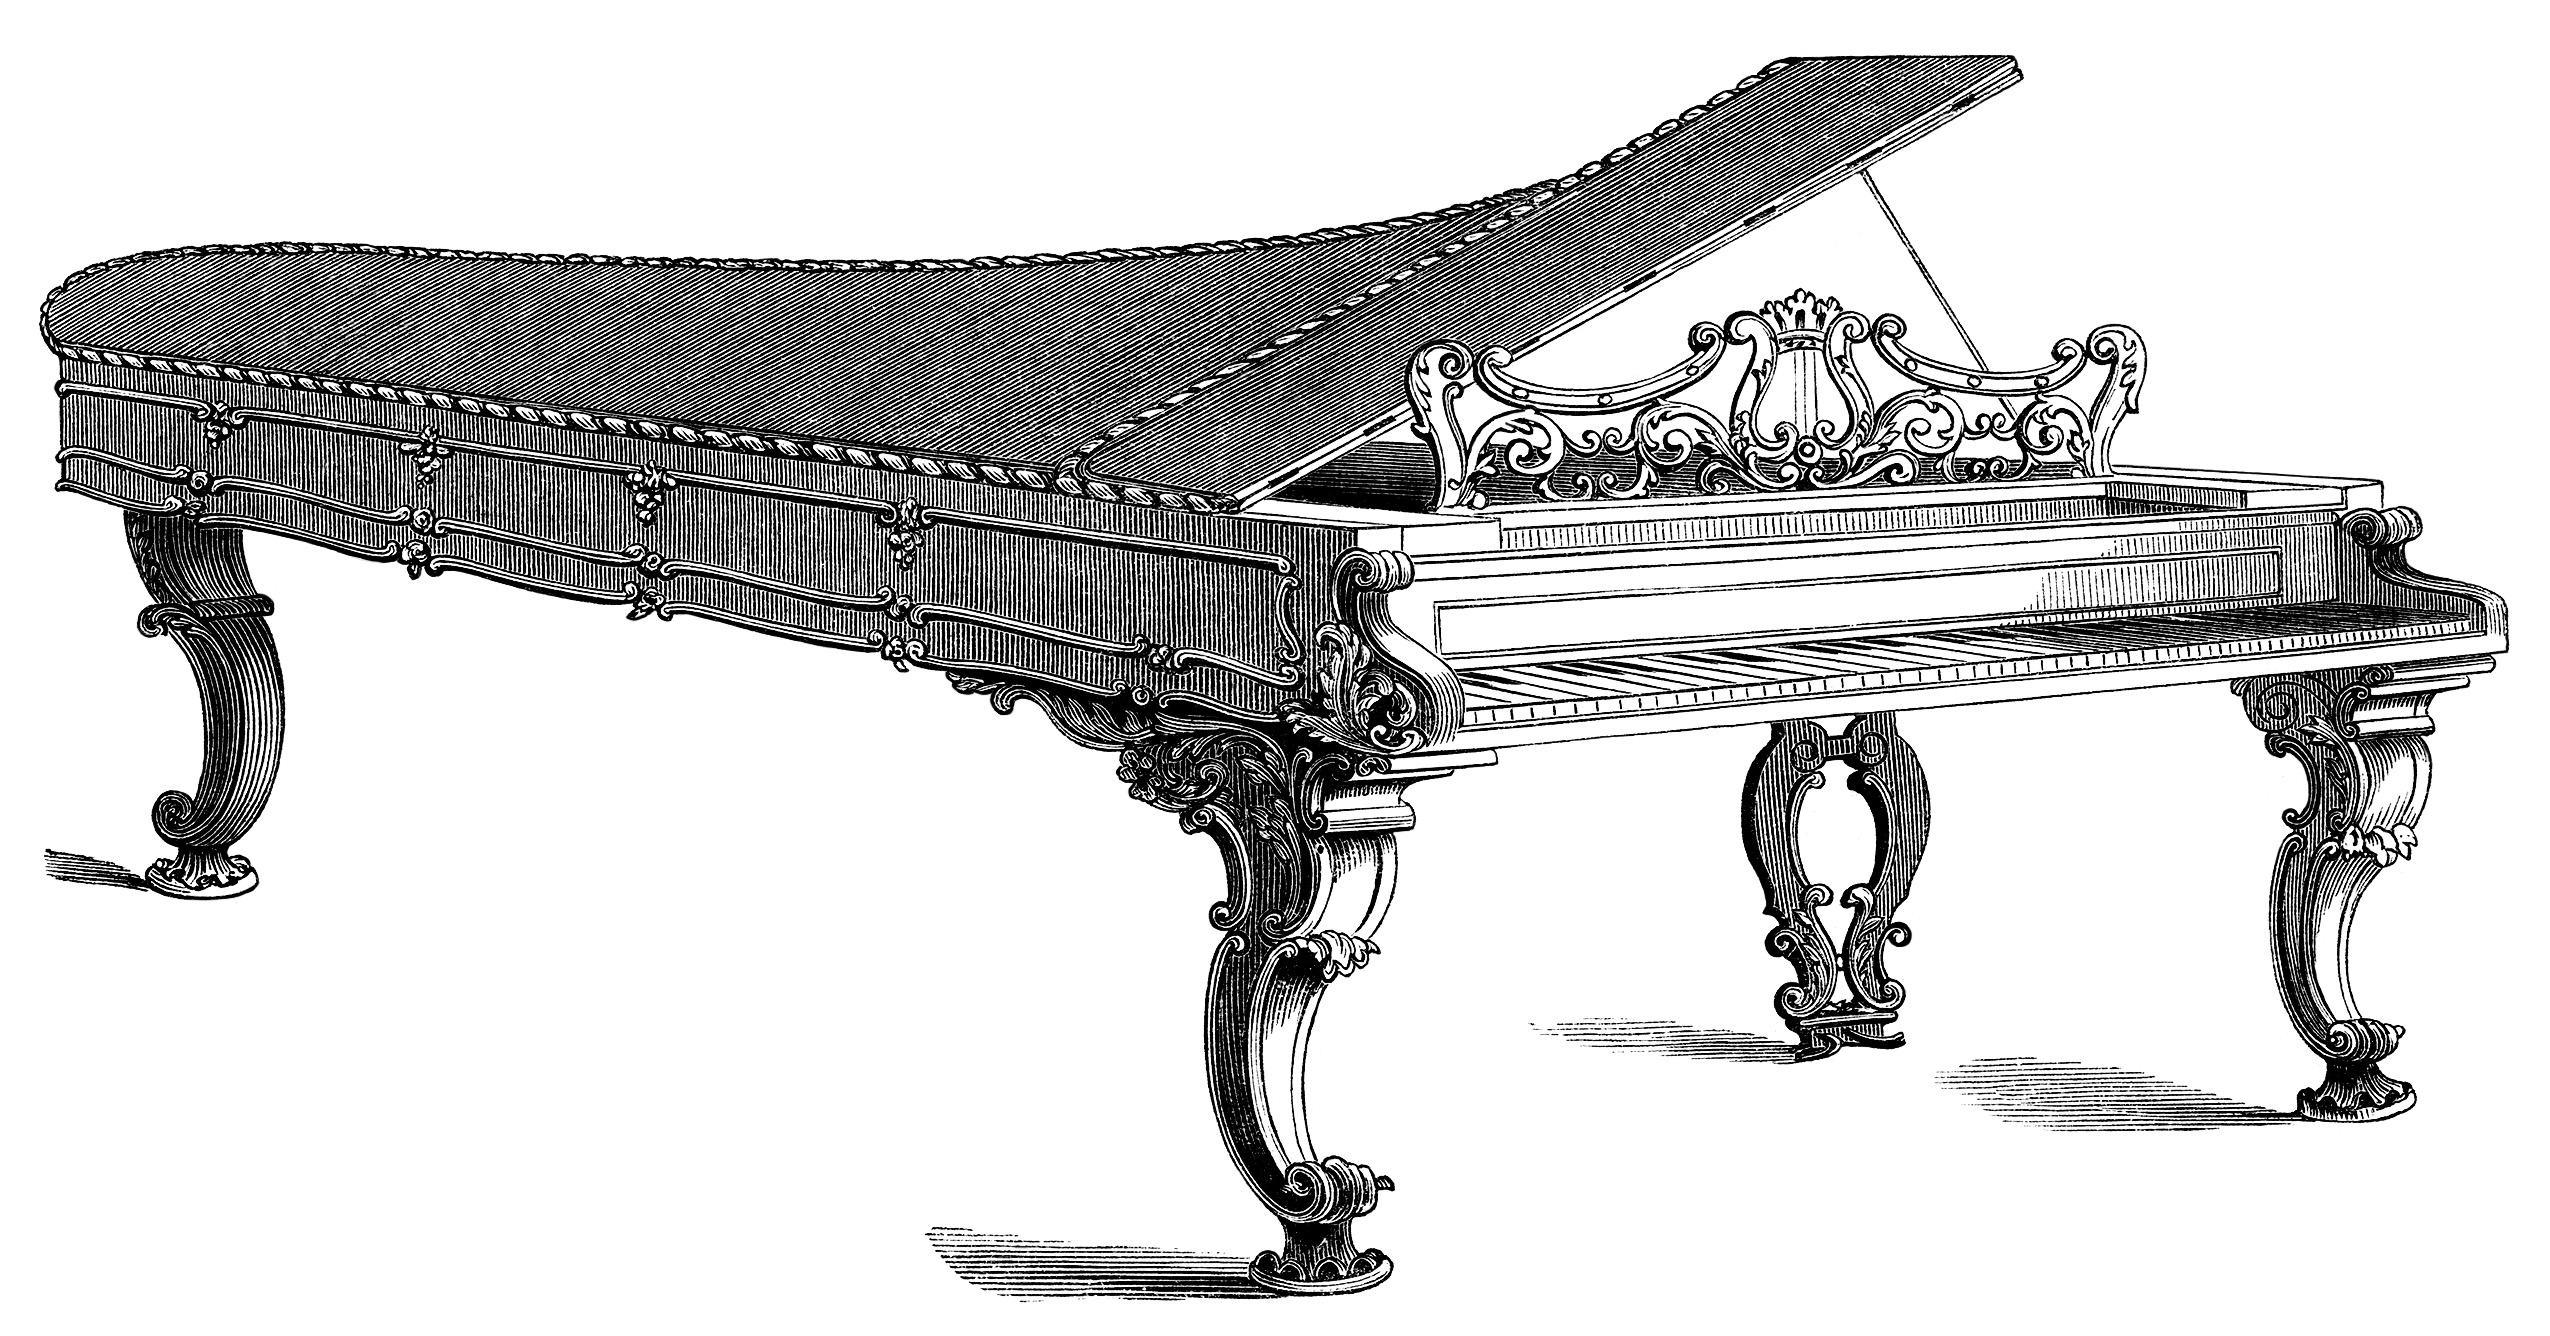 Victorian piano illustration, piano forte engraving, black and white graphics, vintage piano clipart, antique chickering piano